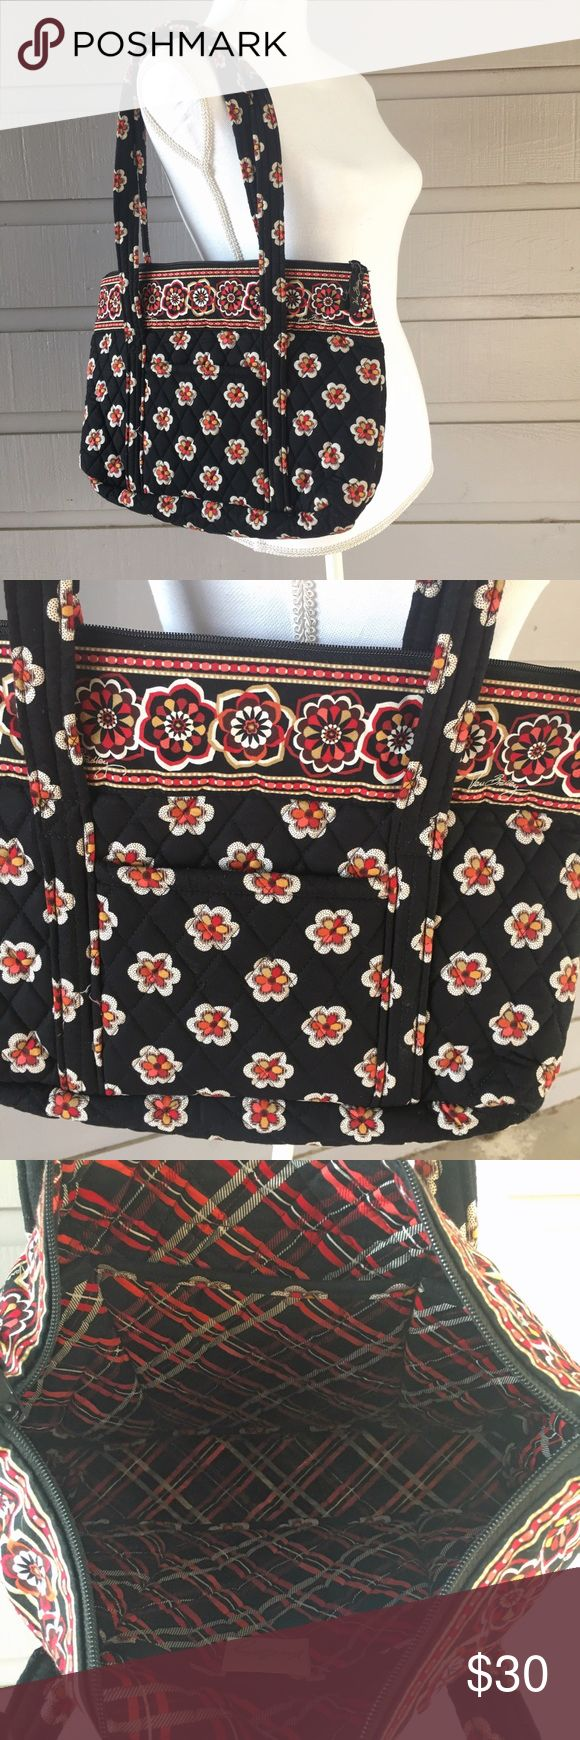 Vera Bradley laptop bag / tote NWOT. Please feel free to ask questions. All offers considered! Vera Bradley Bags Laptop Bags